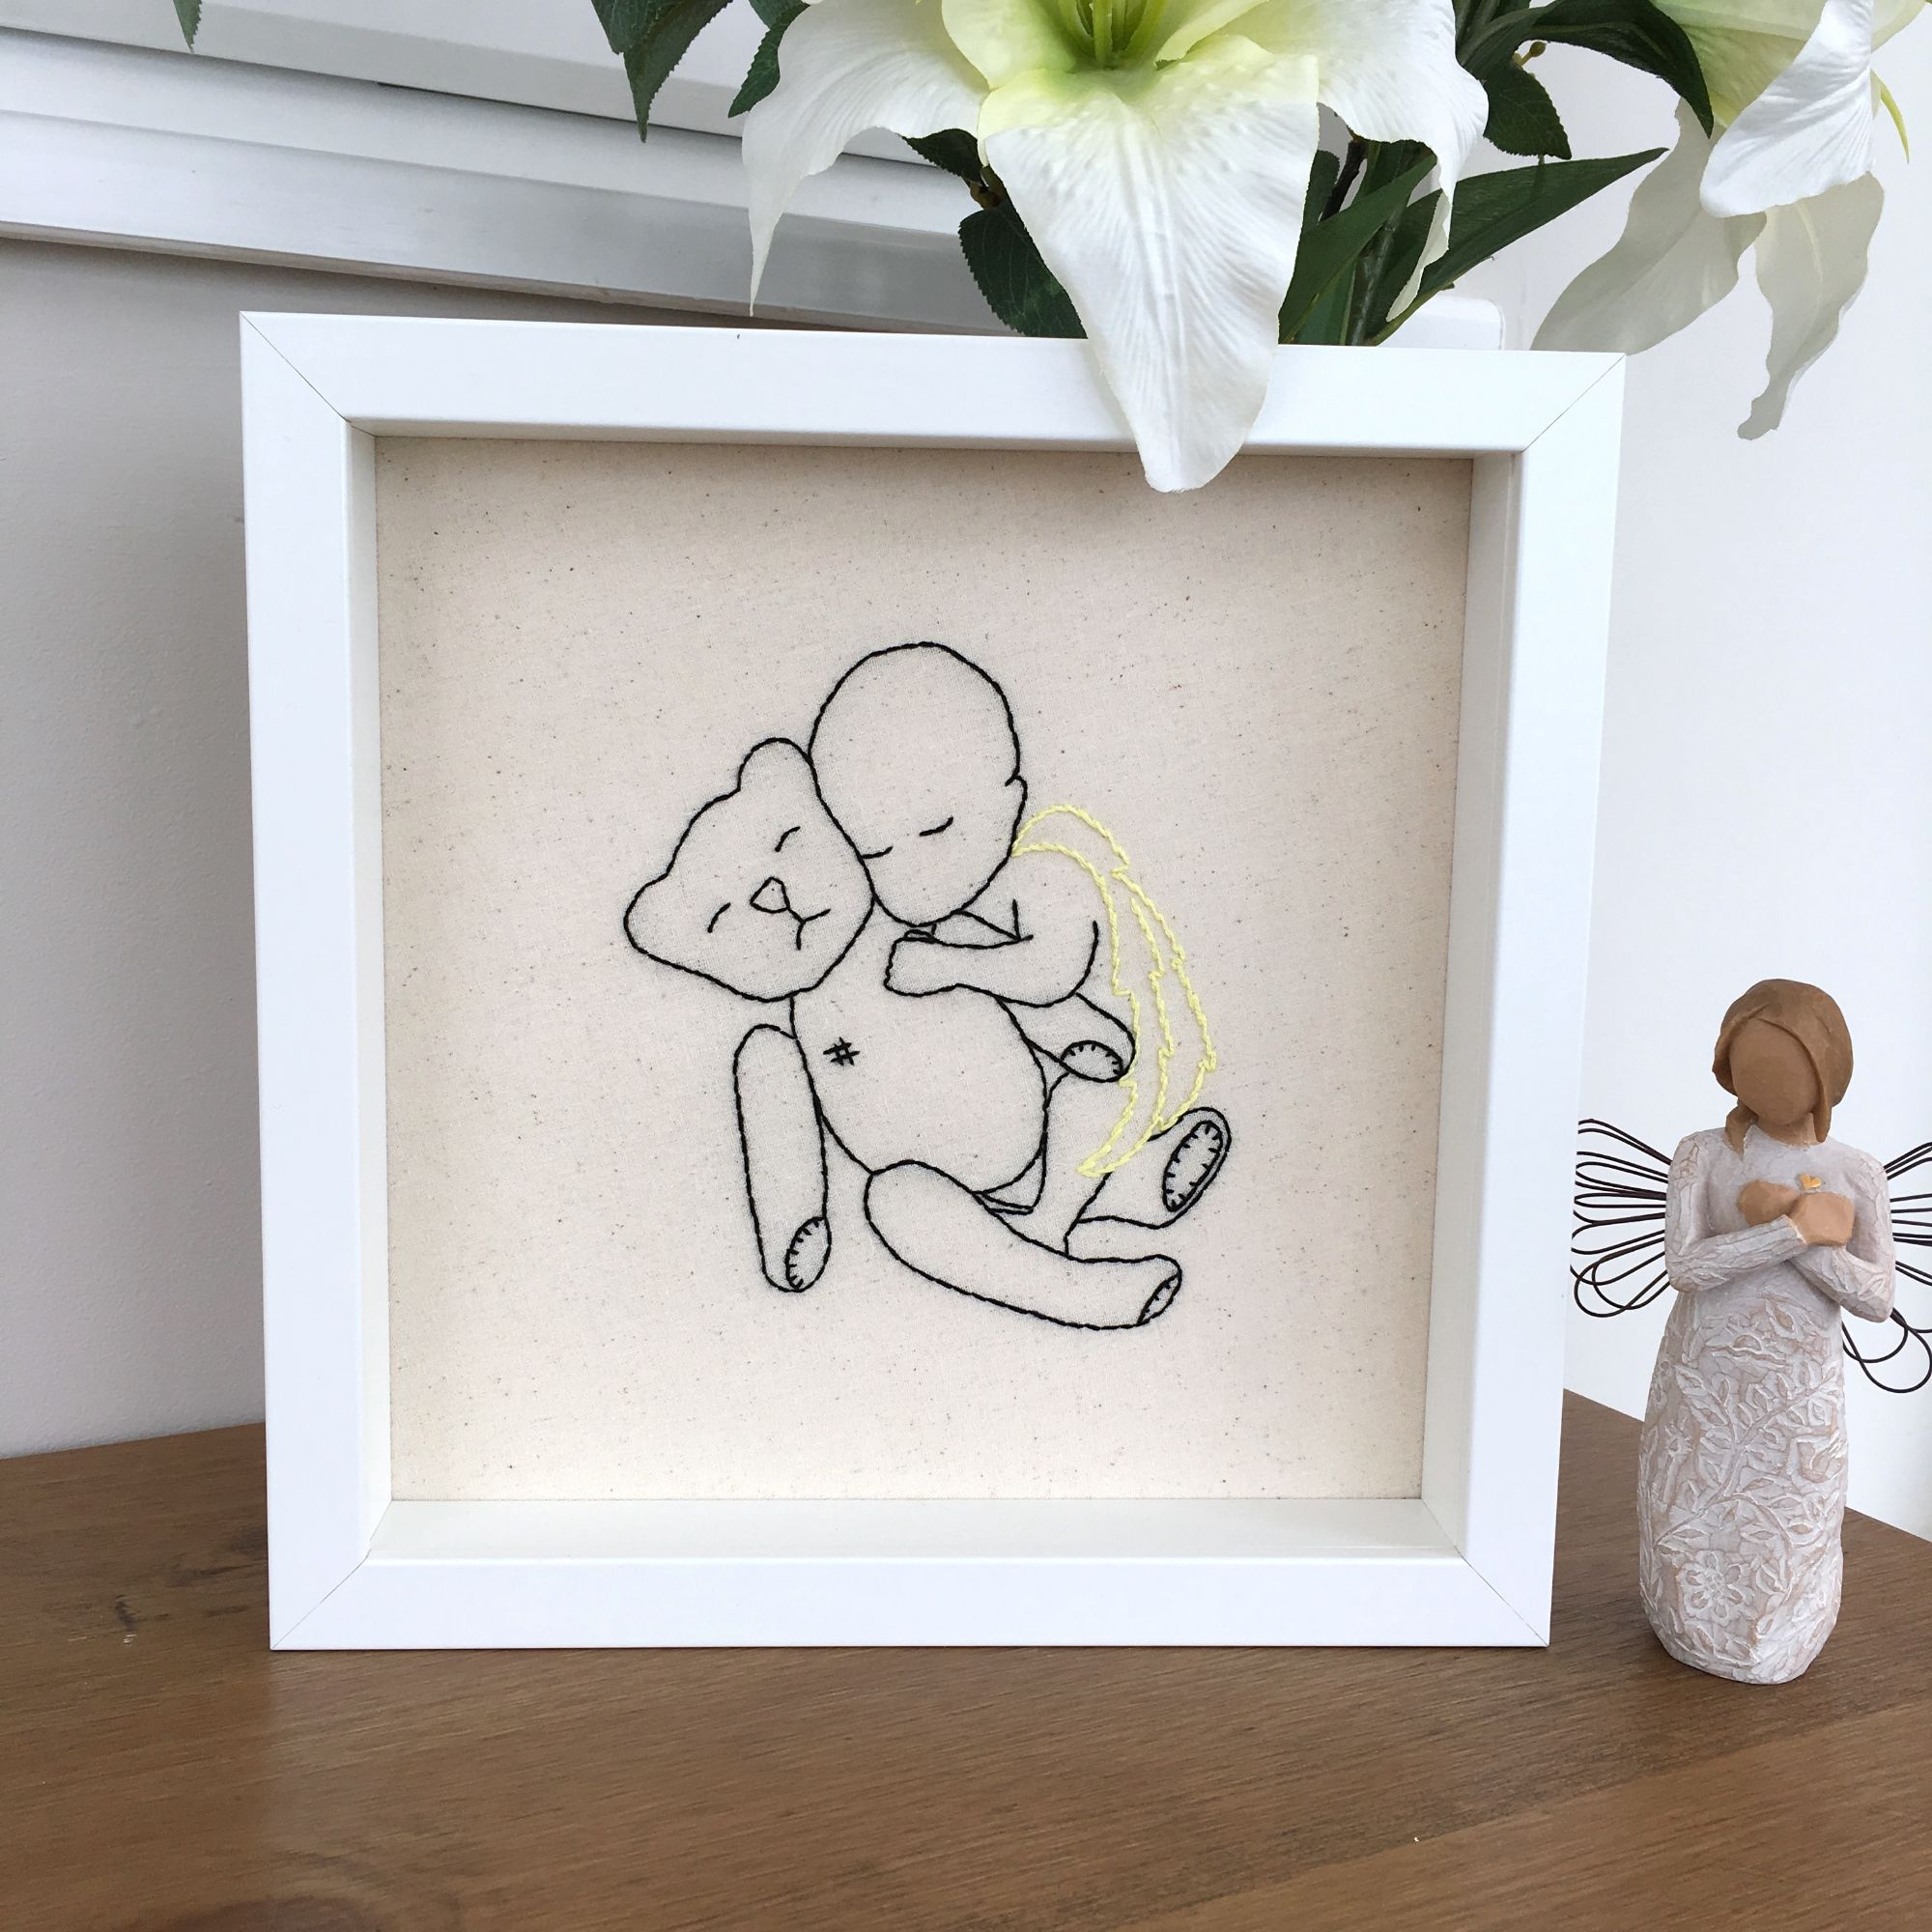 Angel Baby	 & Bear Embroidery	Handcrafted business	Just Sew Helen	Just Sew Helen Bereavement gifts & keepsakes	JustSewHelen.com	Memory gifts & keepsakes	Miscarriage	Remembrance gifts	Thread painting	Twin angels